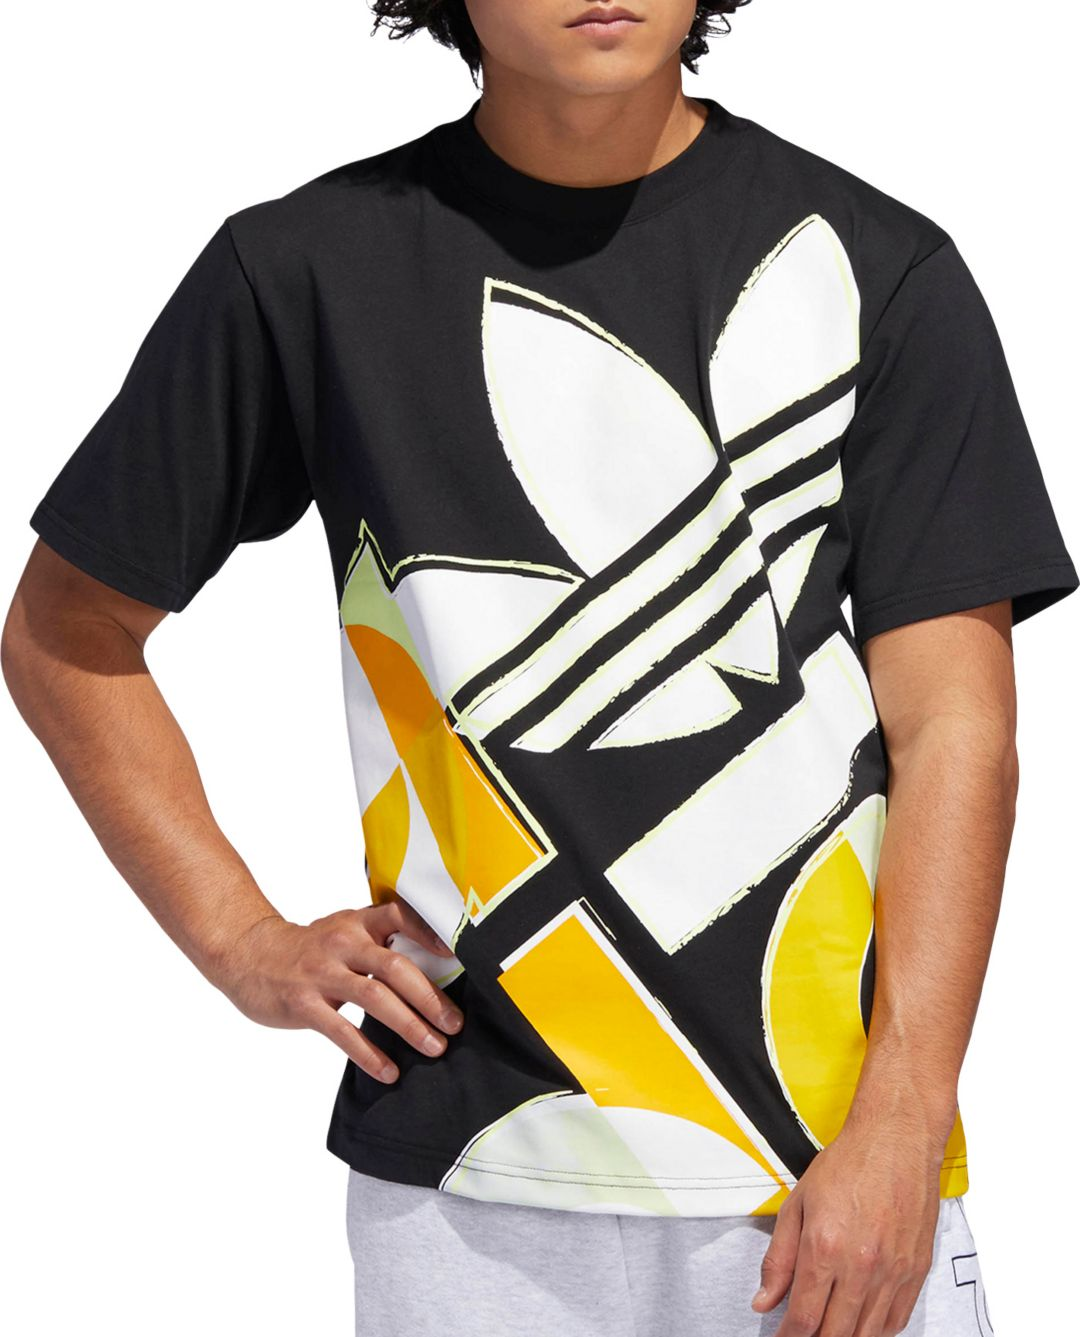 Shirt Adidas Originals Bold Men's T Graphic wOvm8nN0